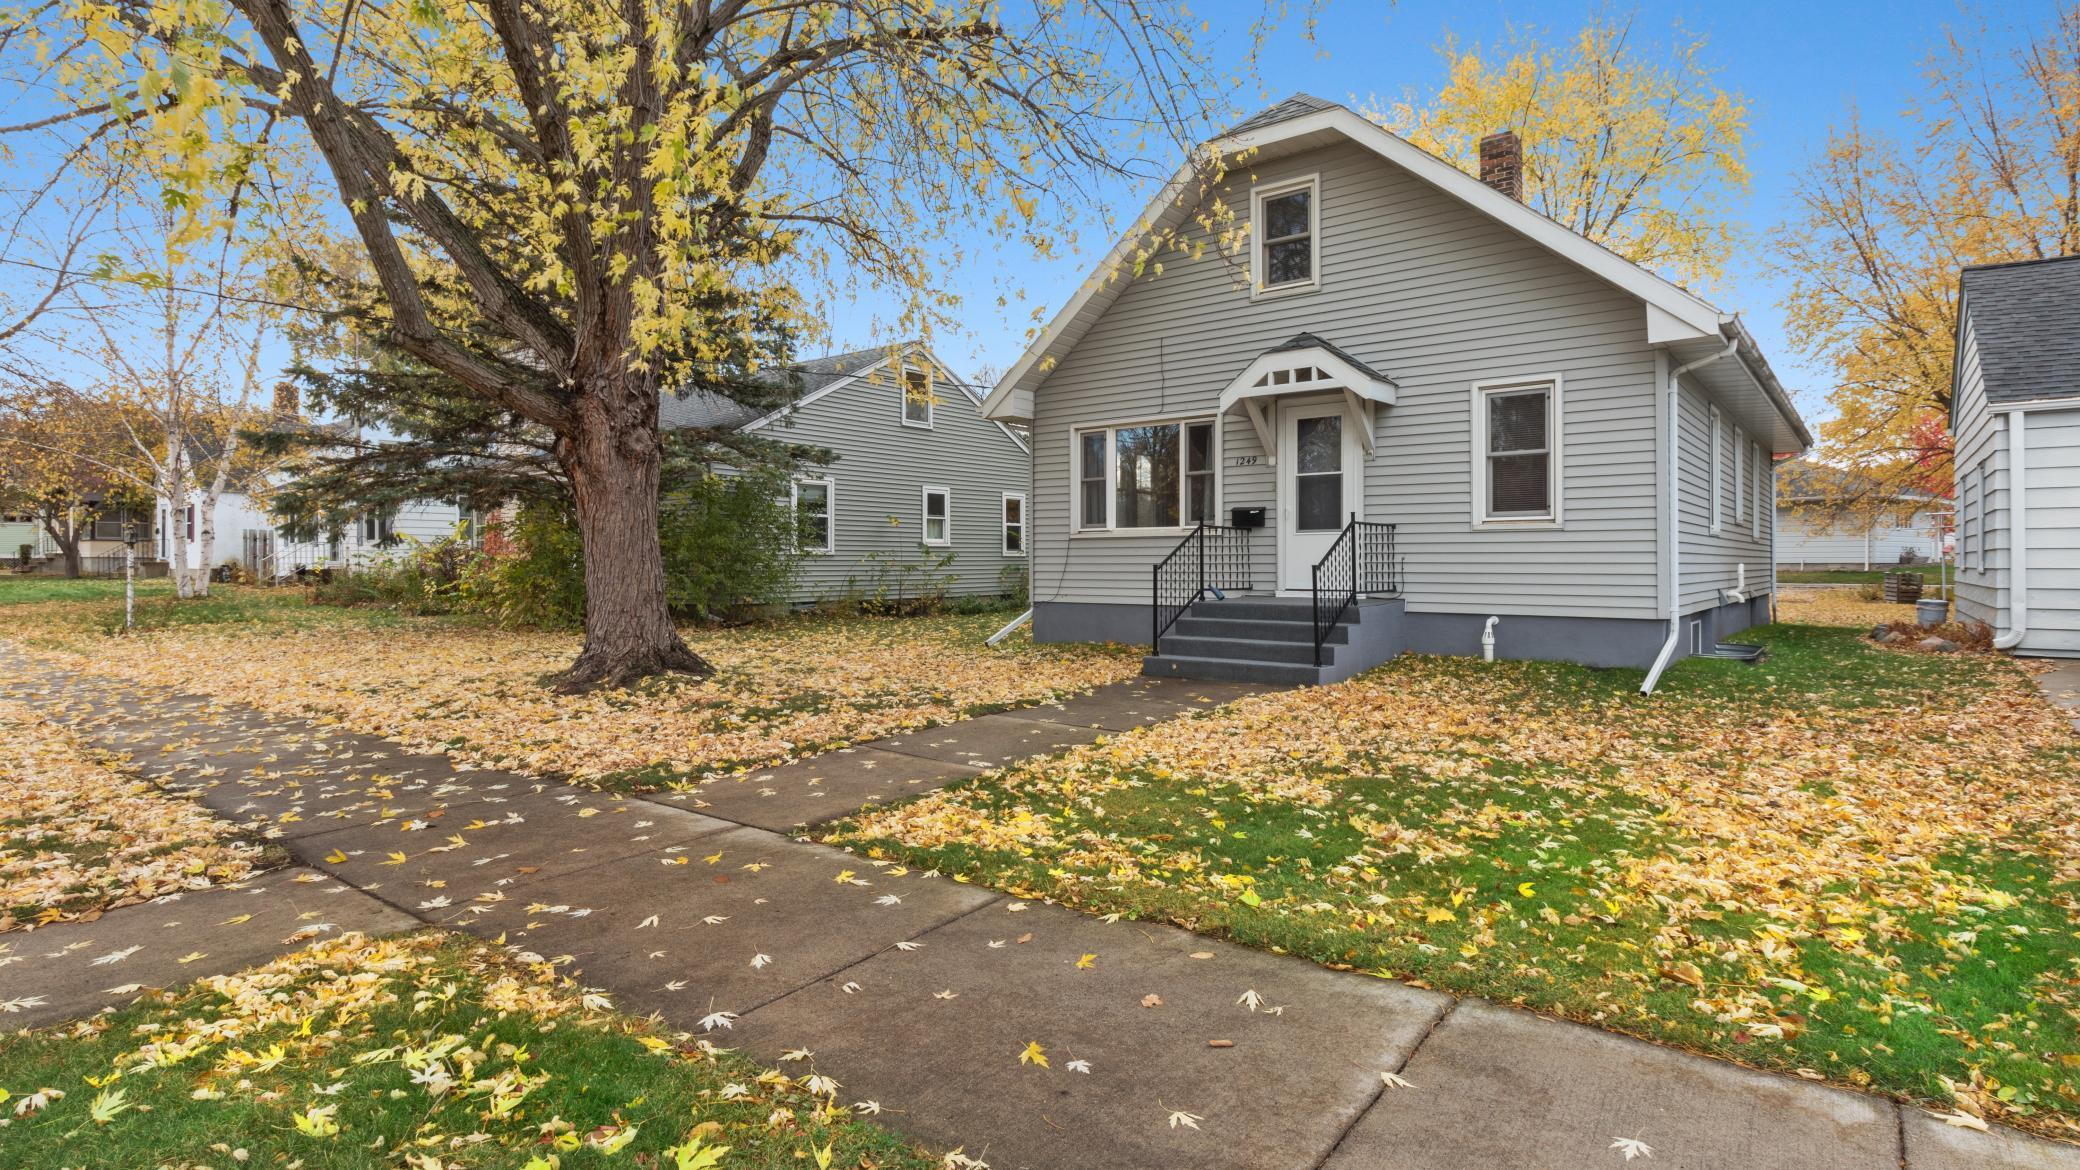 Adorable 5 bedroom, 3 bath home located in the St. Cloud Hospital neighborhood. Home has updated furnace, steel siding, new kitchen cabinet fronts and drawers. Stainless steel appliances, updated baths, and inside of home has just been painted. 10x12 storage shed.